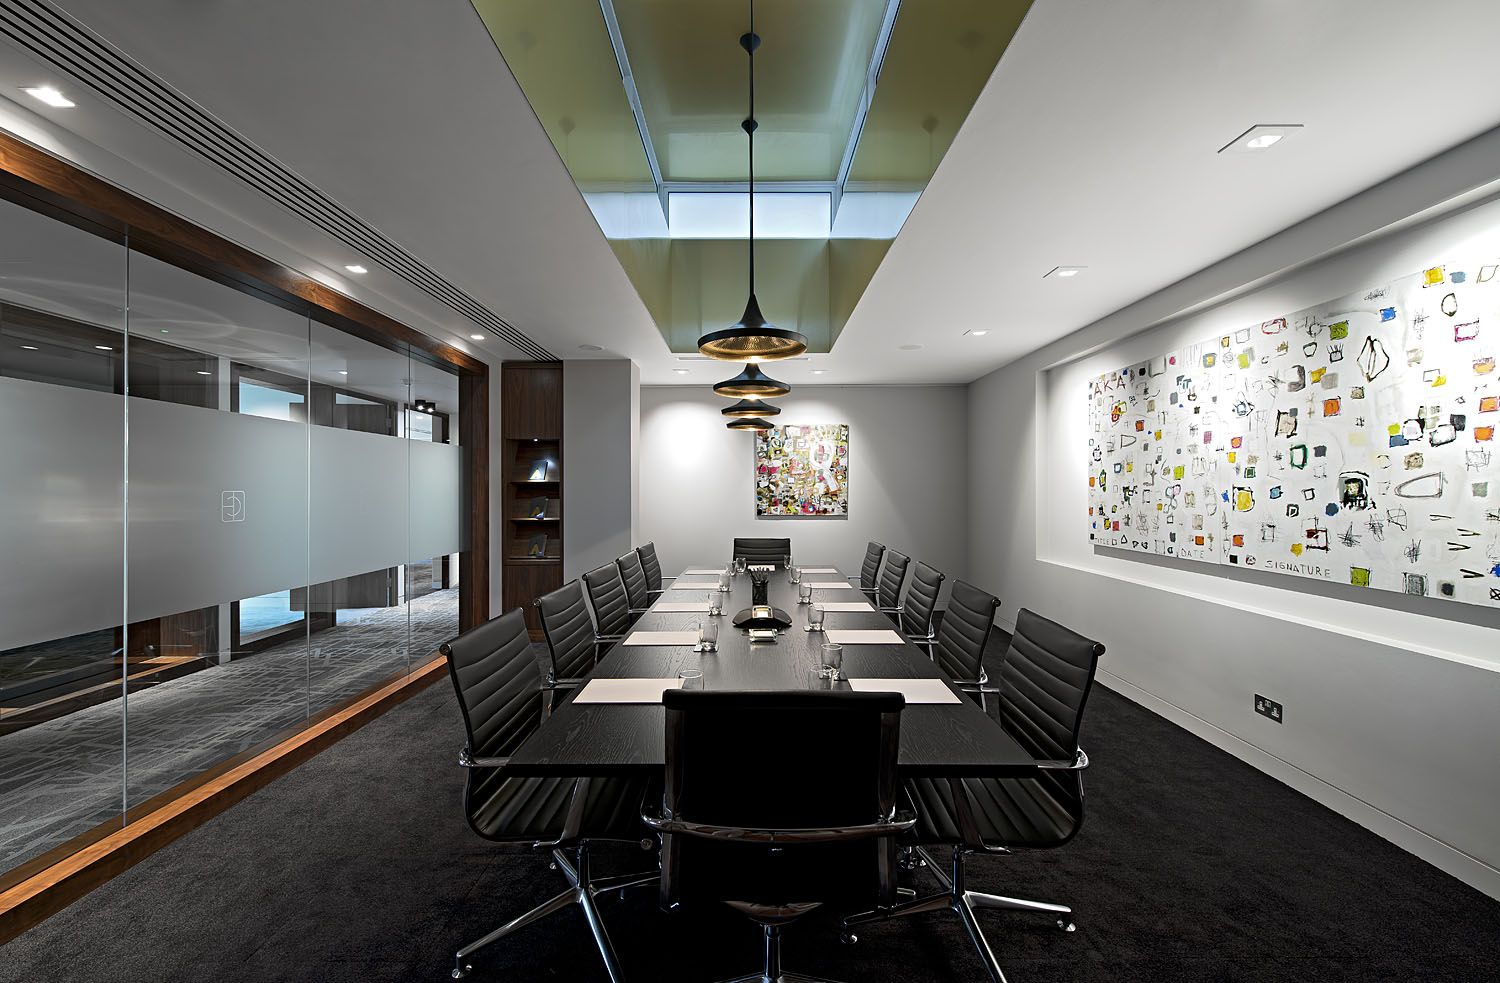 Interior Office Conference Room